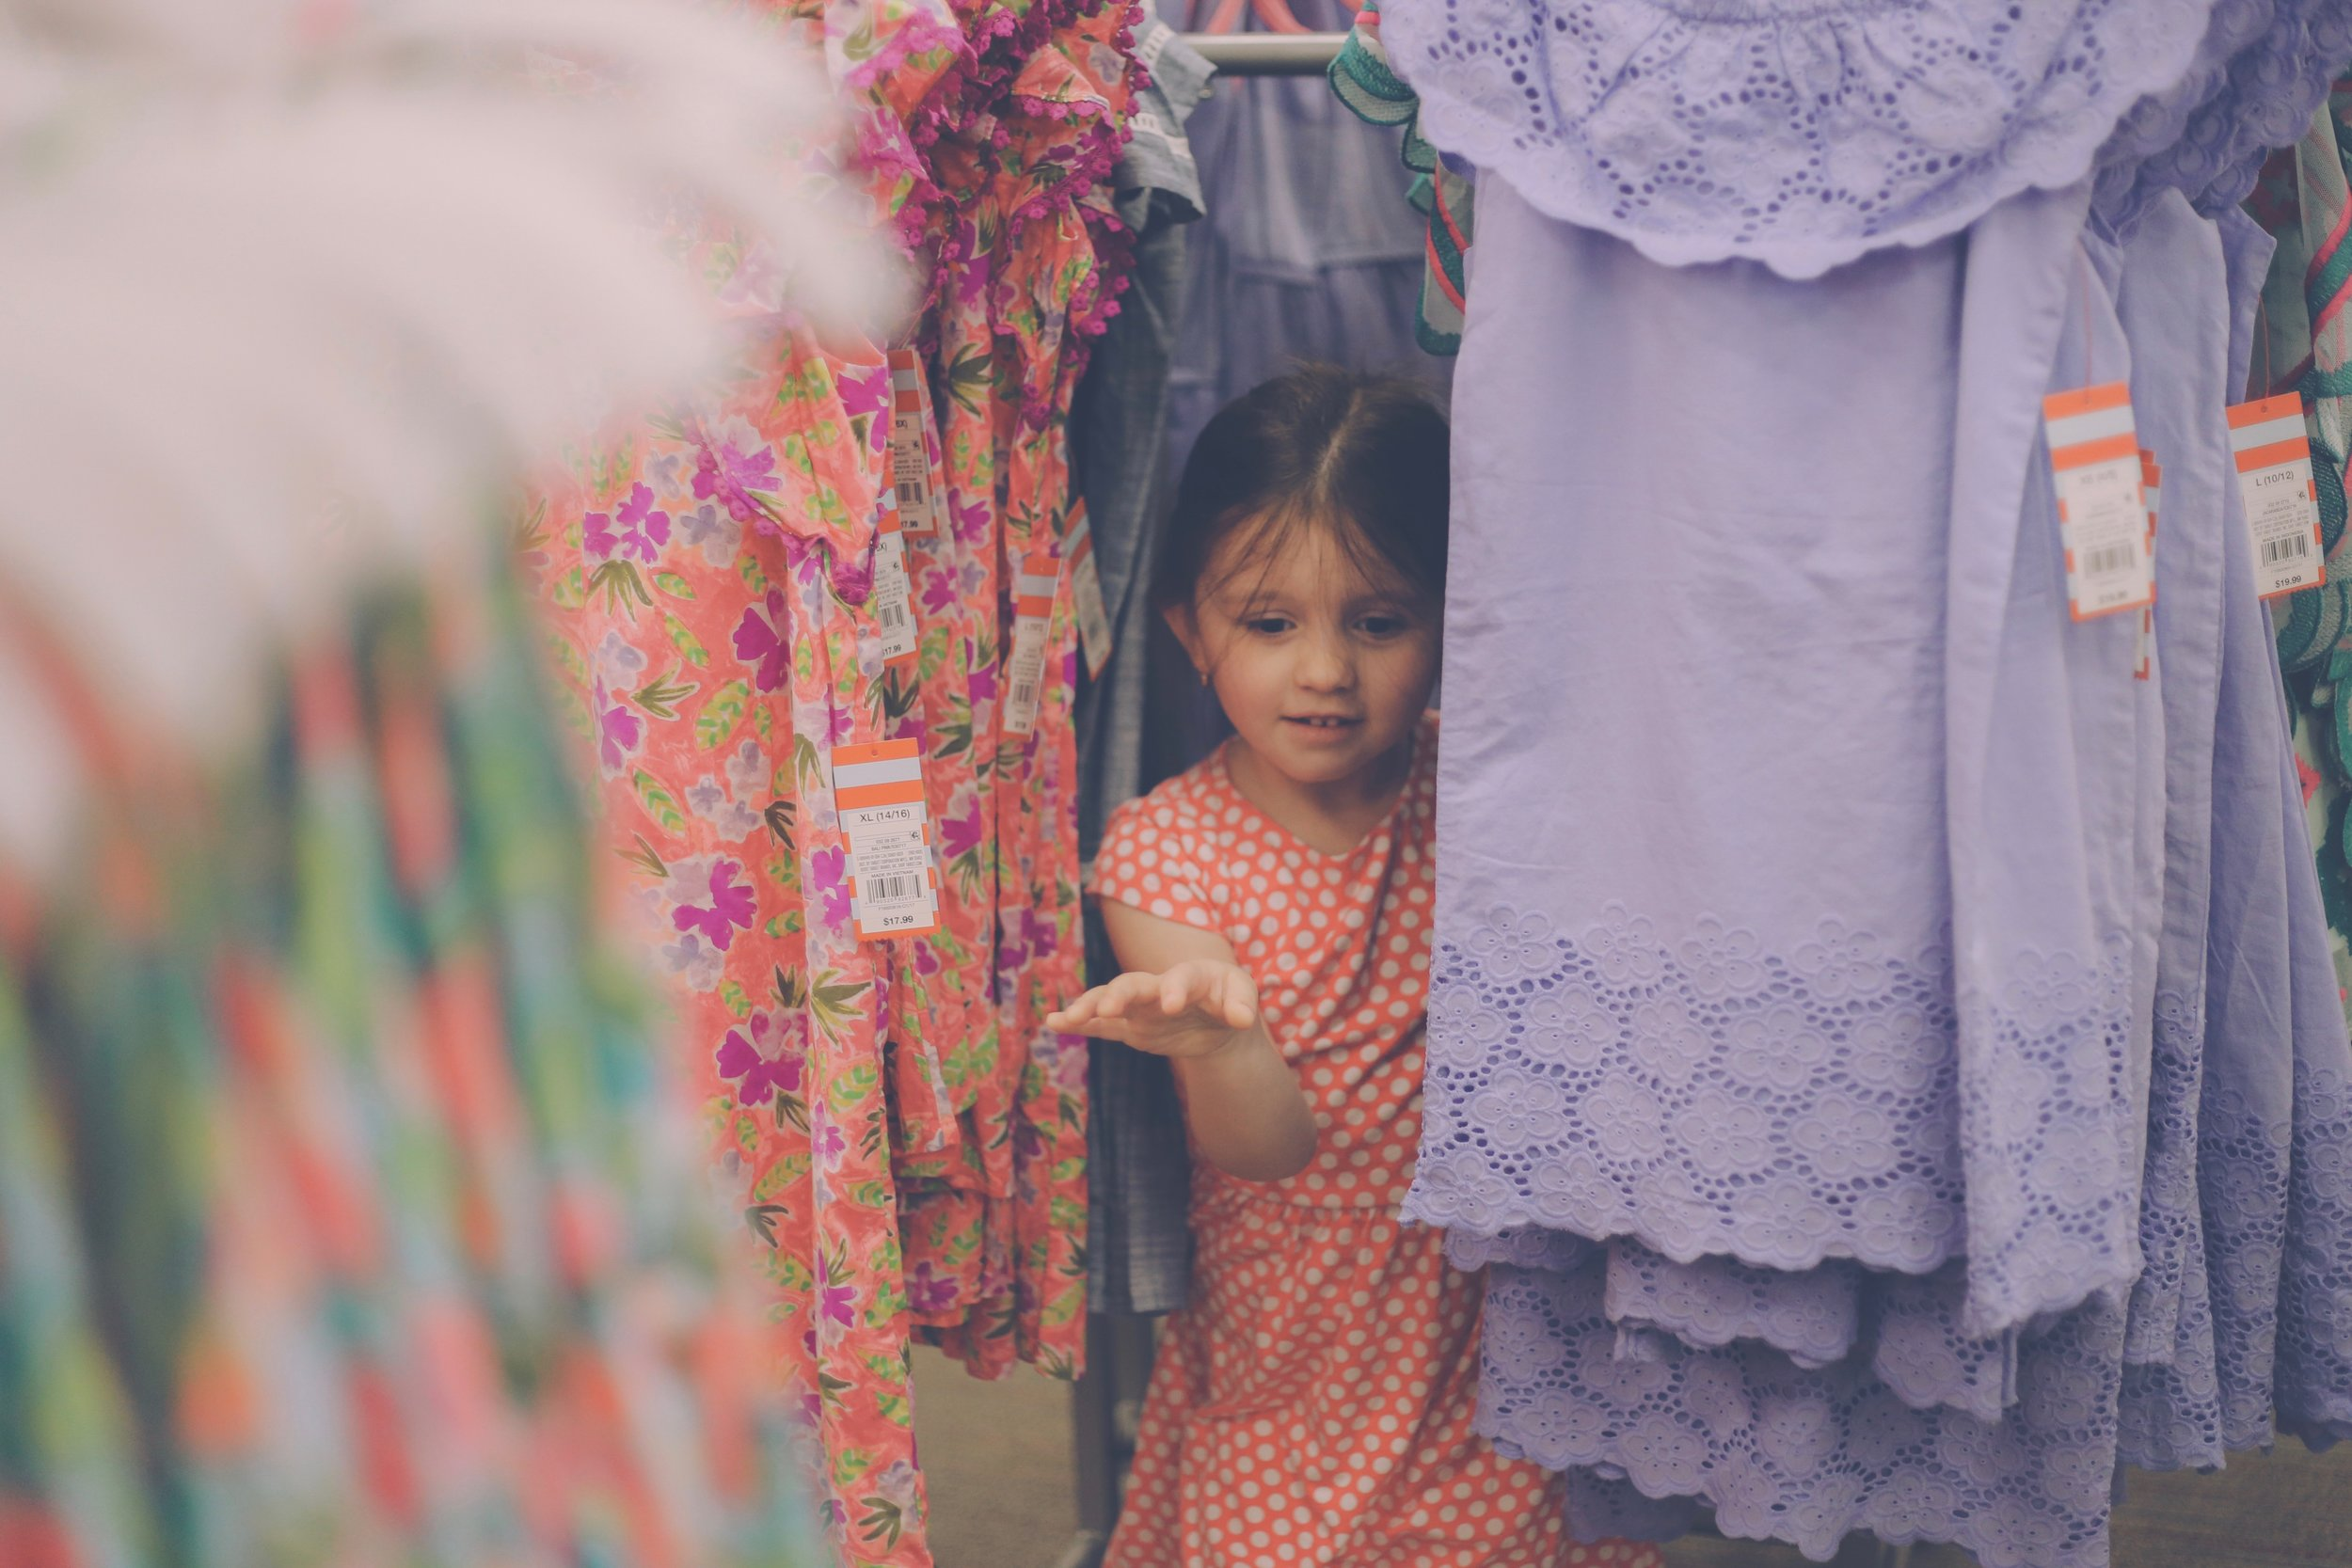 Kids Clothes Shopping, Family Photojournalism, Staten Island